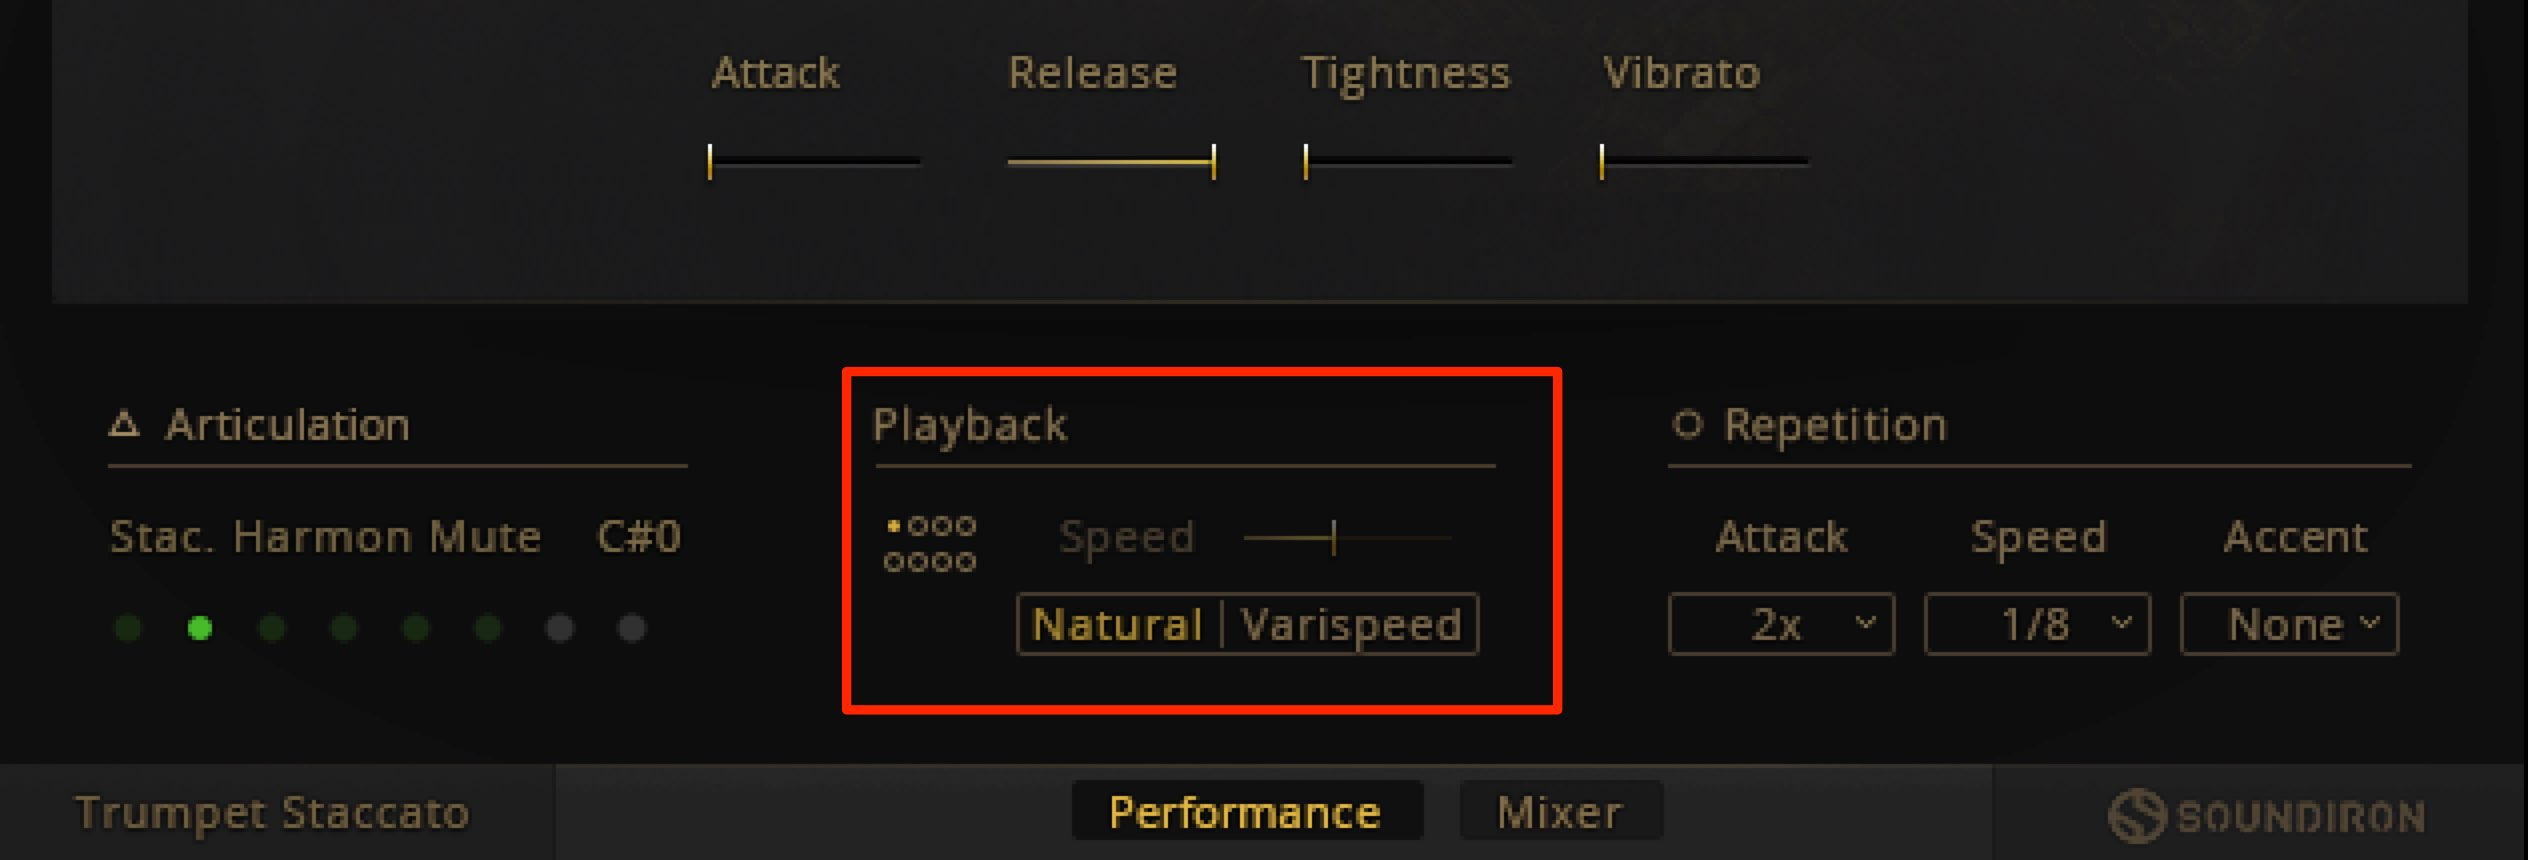 PlaybackSpeed